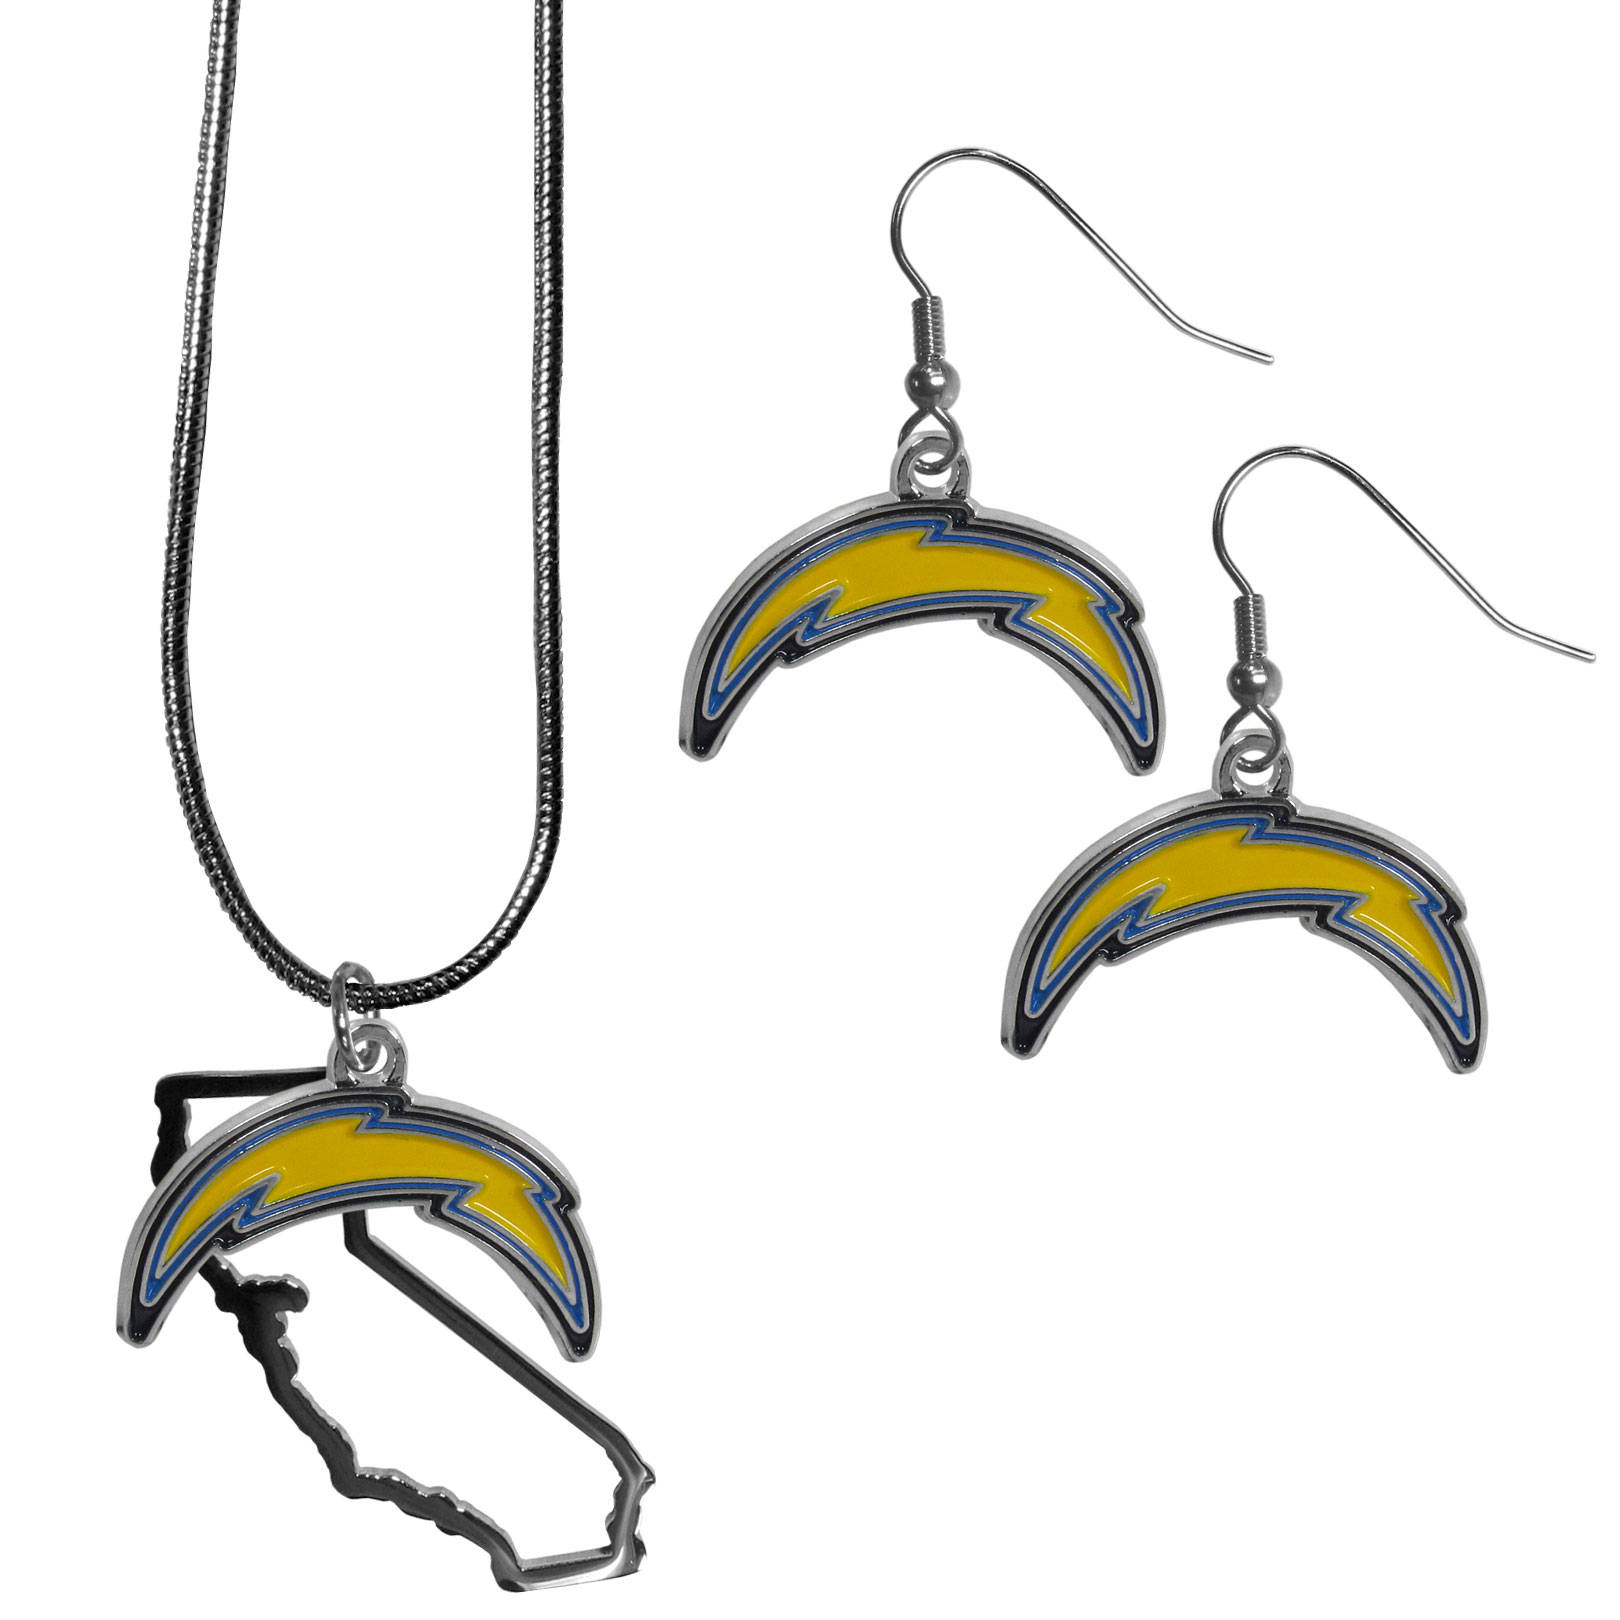 Los Angeles Chargers Dangle Earrings and State Necklace Set - Get in on the trend! State themes are a trend that just keeps getting more popular and this jewelry set takes the state style and give it a sporty twist with a Los Angeles Chargers necklace that features an Arizona state outline charm paired with a beautiful team charm and matching team charm dangle earrings. The earrings feature hypoallergenic fishhook posts that are nickel free.